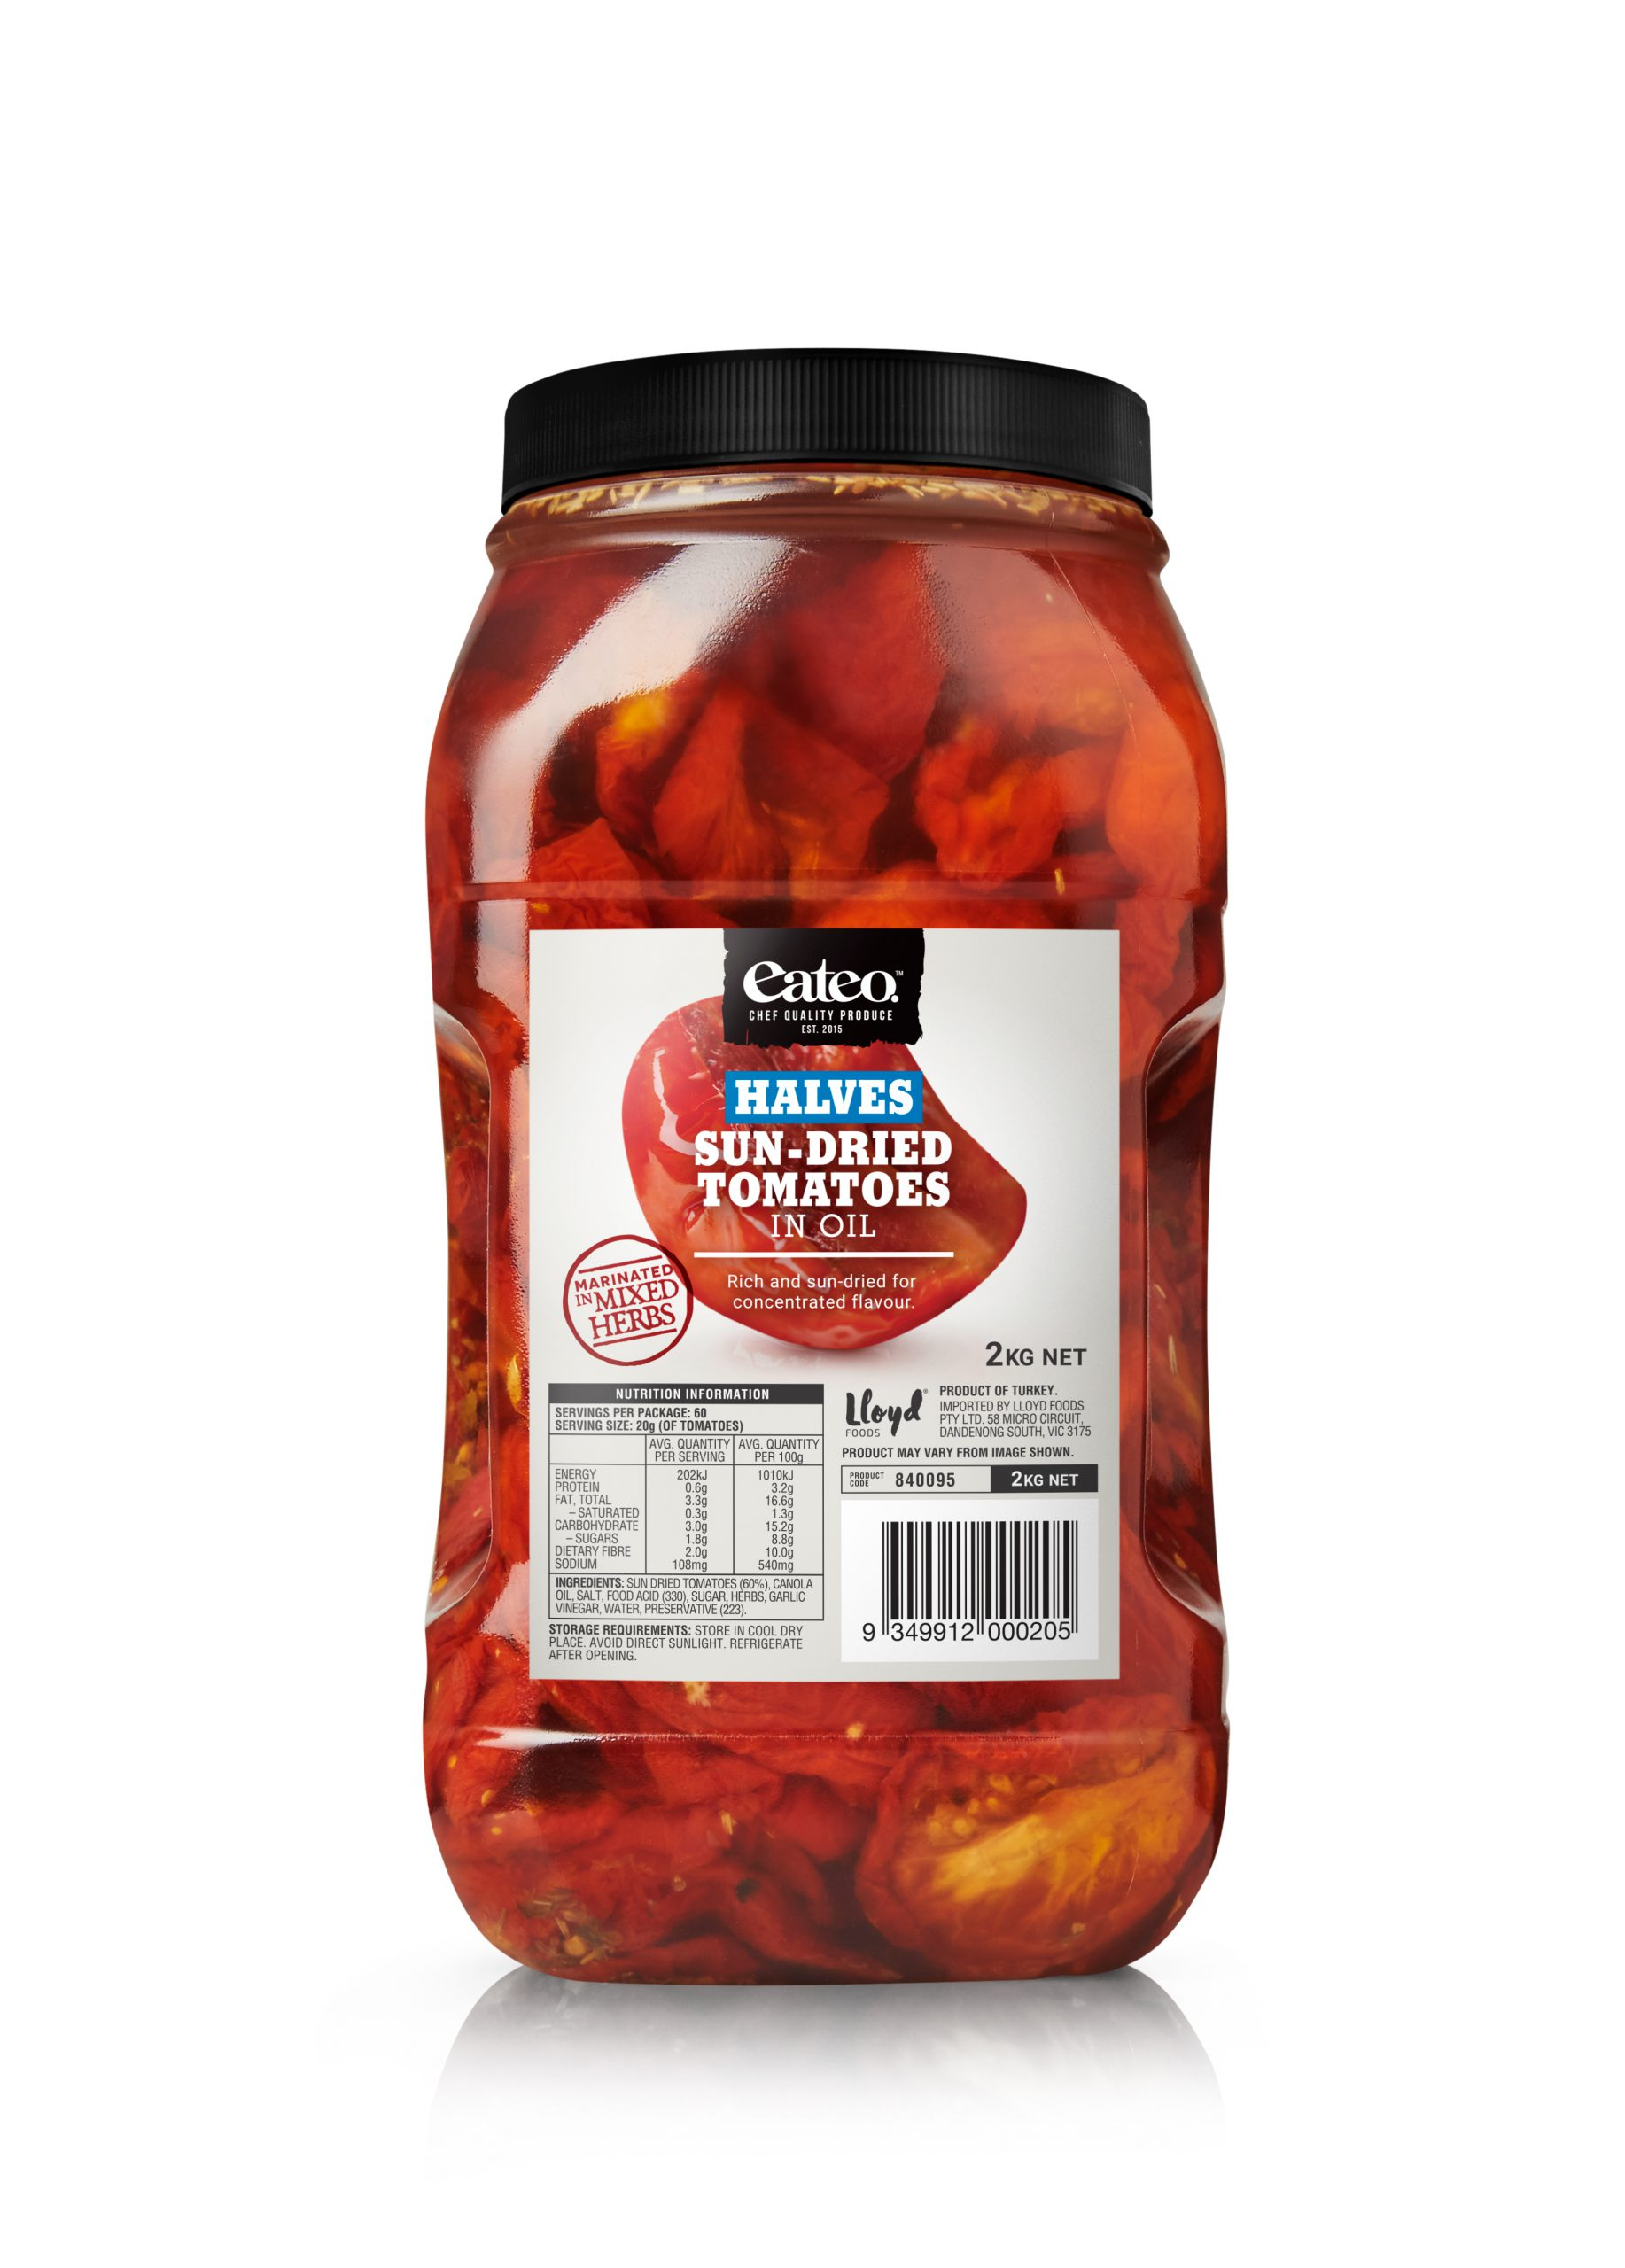 Halves Sun-Dried Tomatoes in Oil